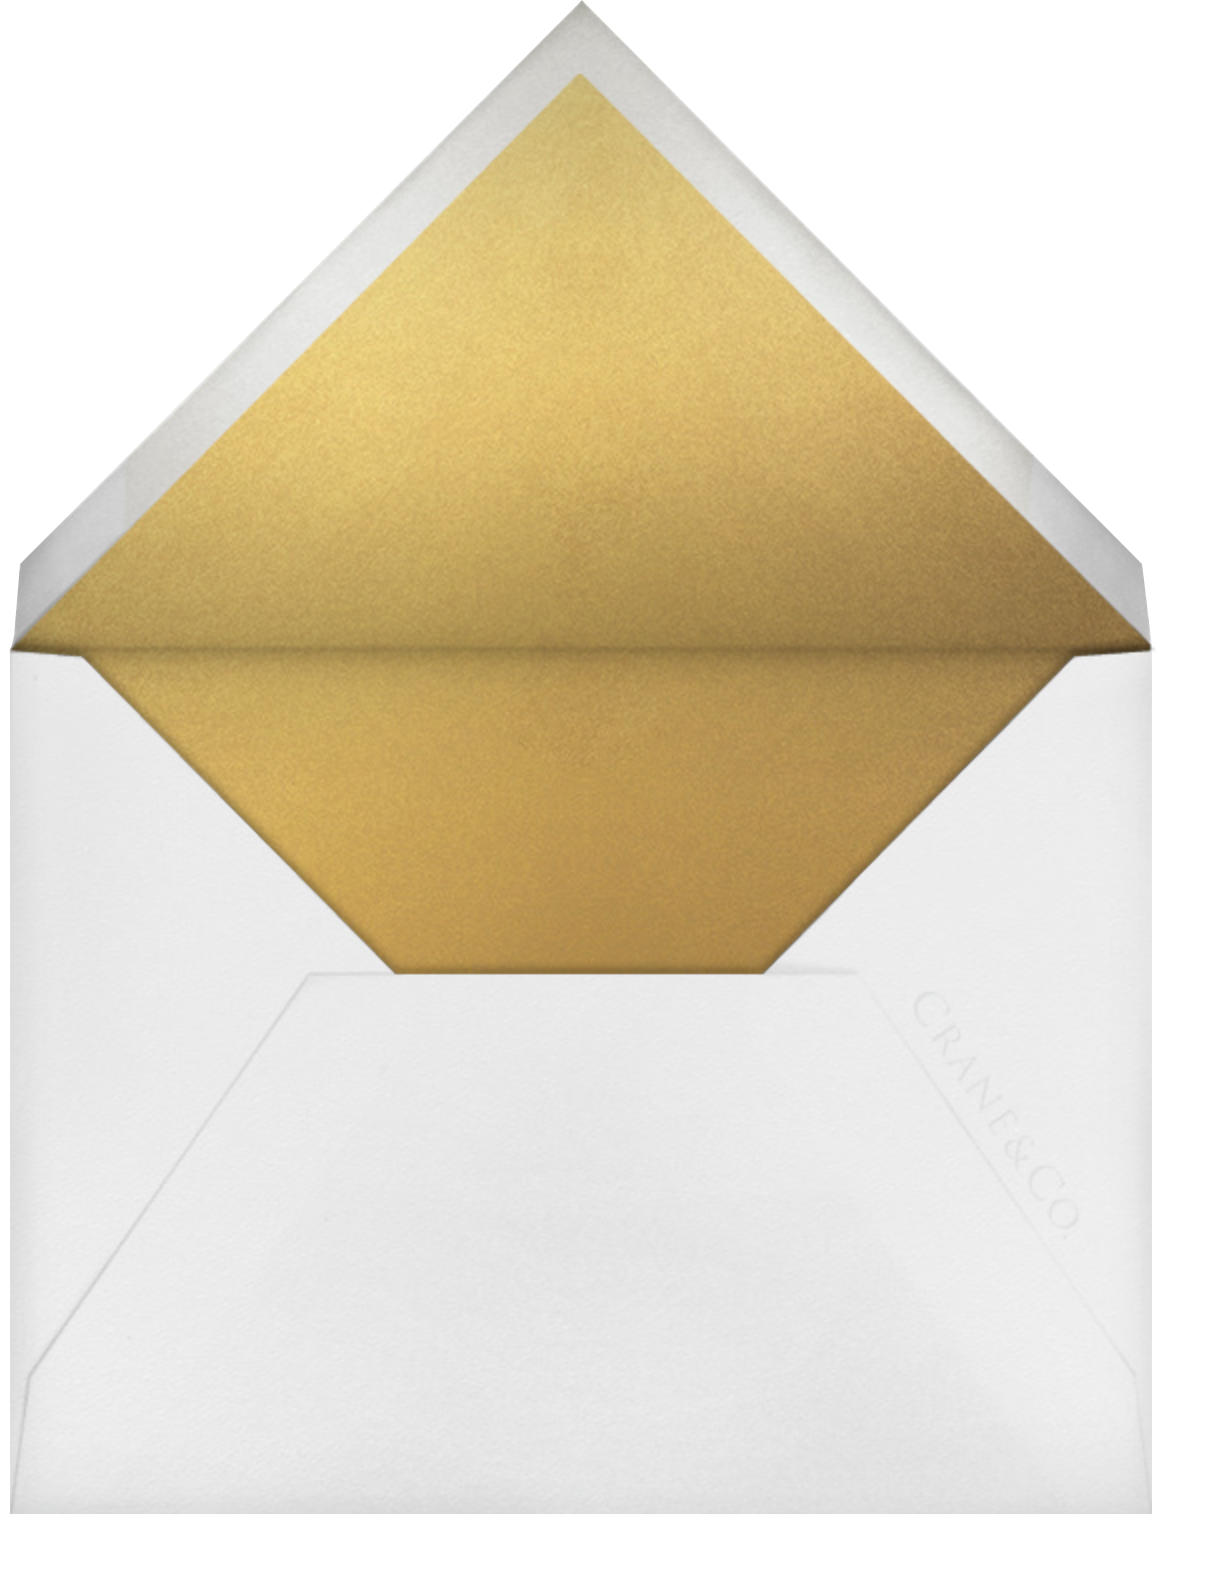 Gilded Edge - Gold - Paperless Post - Personalized stationery - envelope back